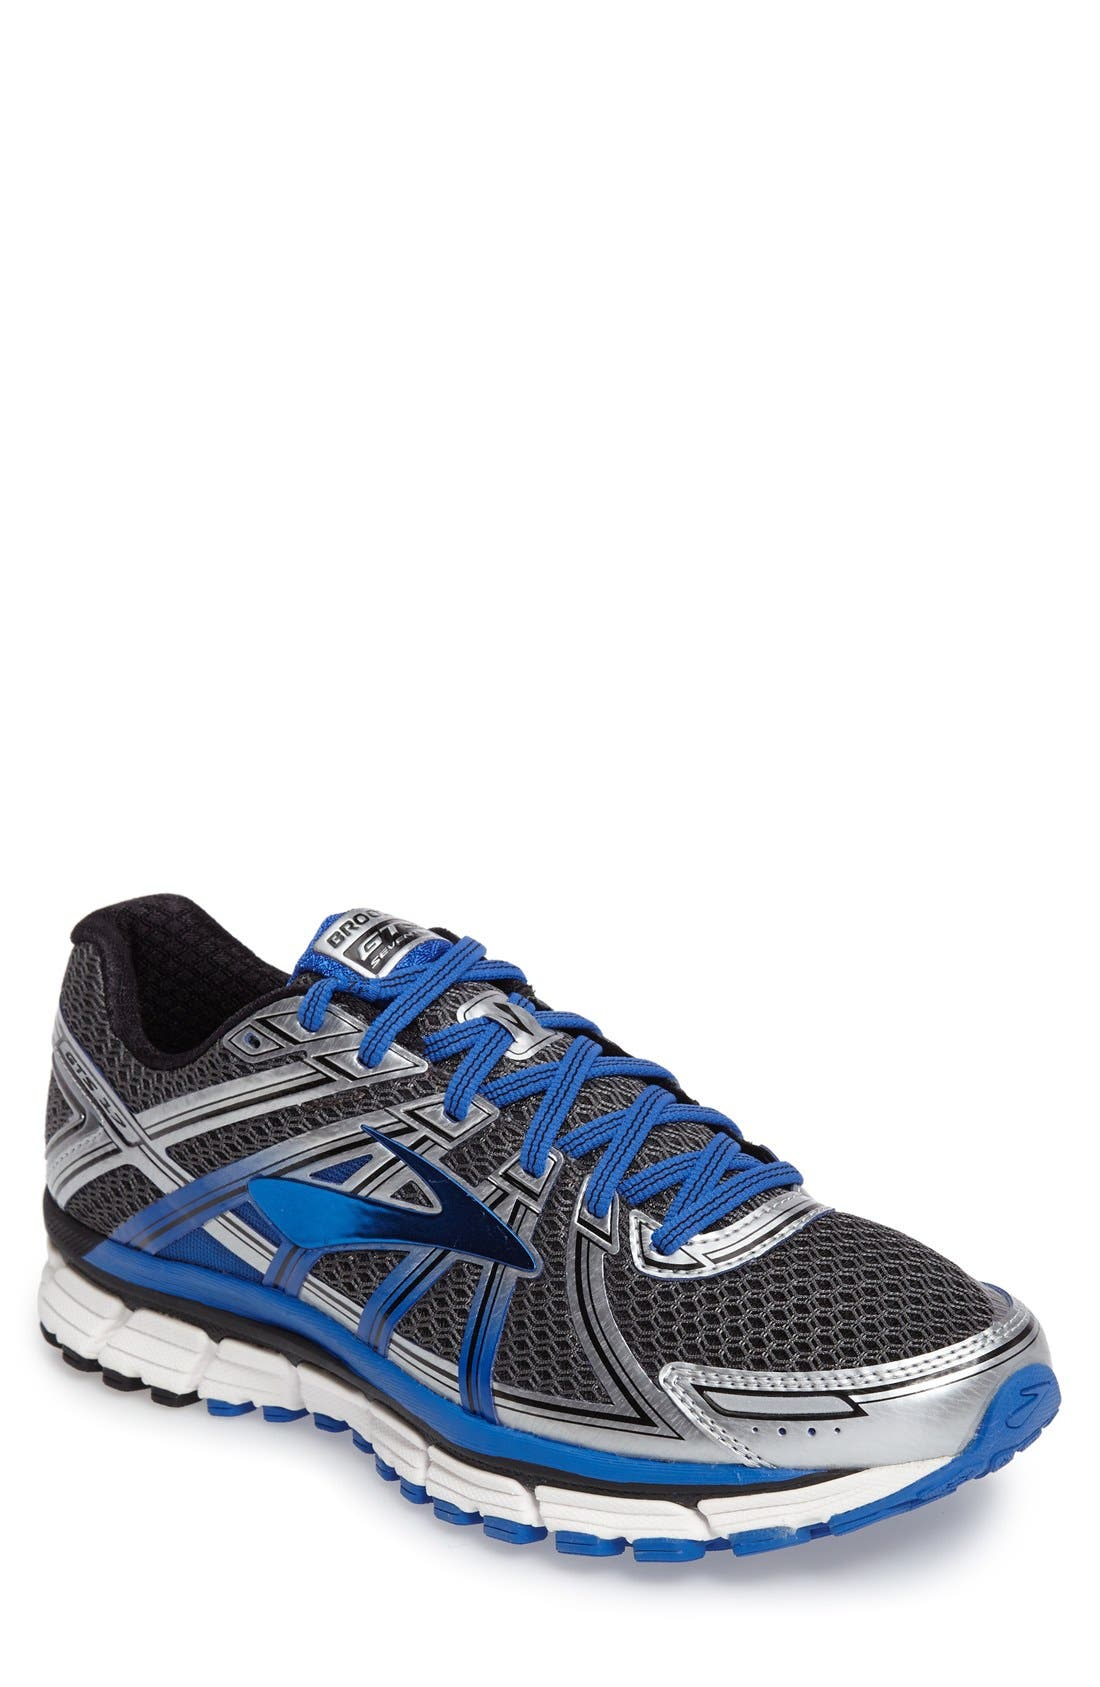 Adrenaline GTS 17 Running Shoe,                             Main thumbnail 1, color,                             Anthracite/ Blue/ Silver